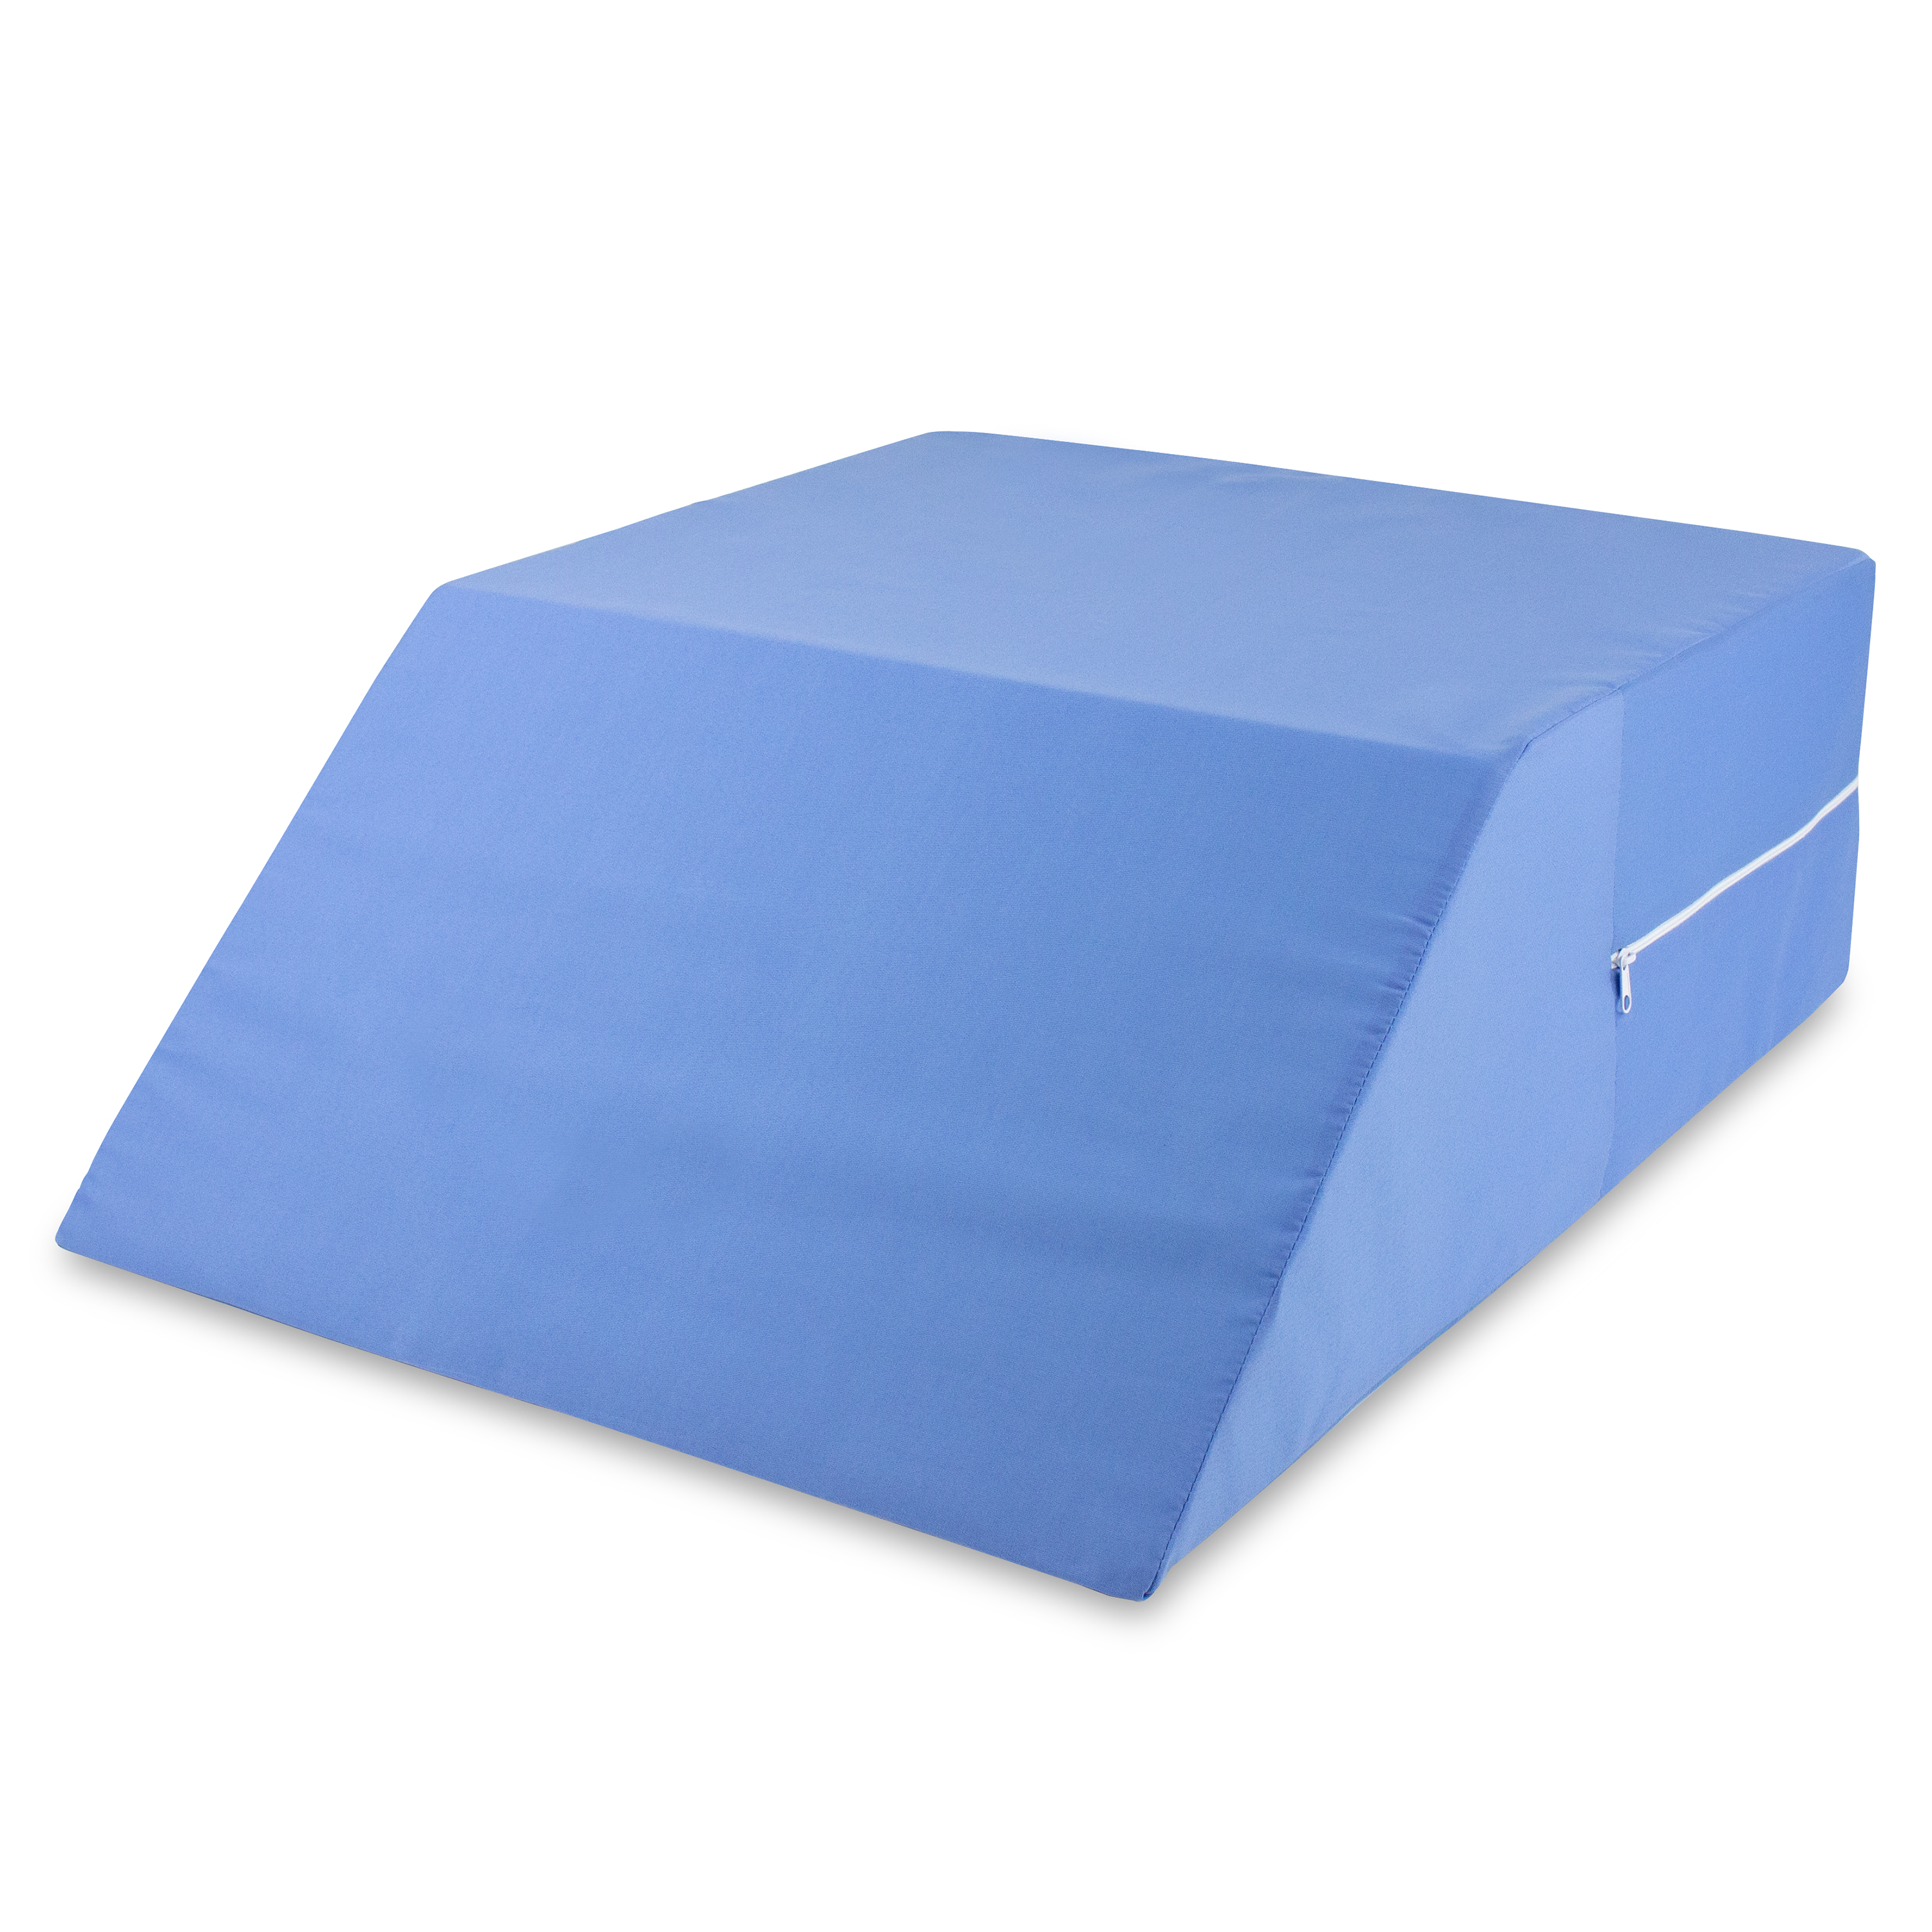 Supportive Foam Wedge Pillow for Legs, DMI Ortho Bed Wedge Elevated Leg Pillow